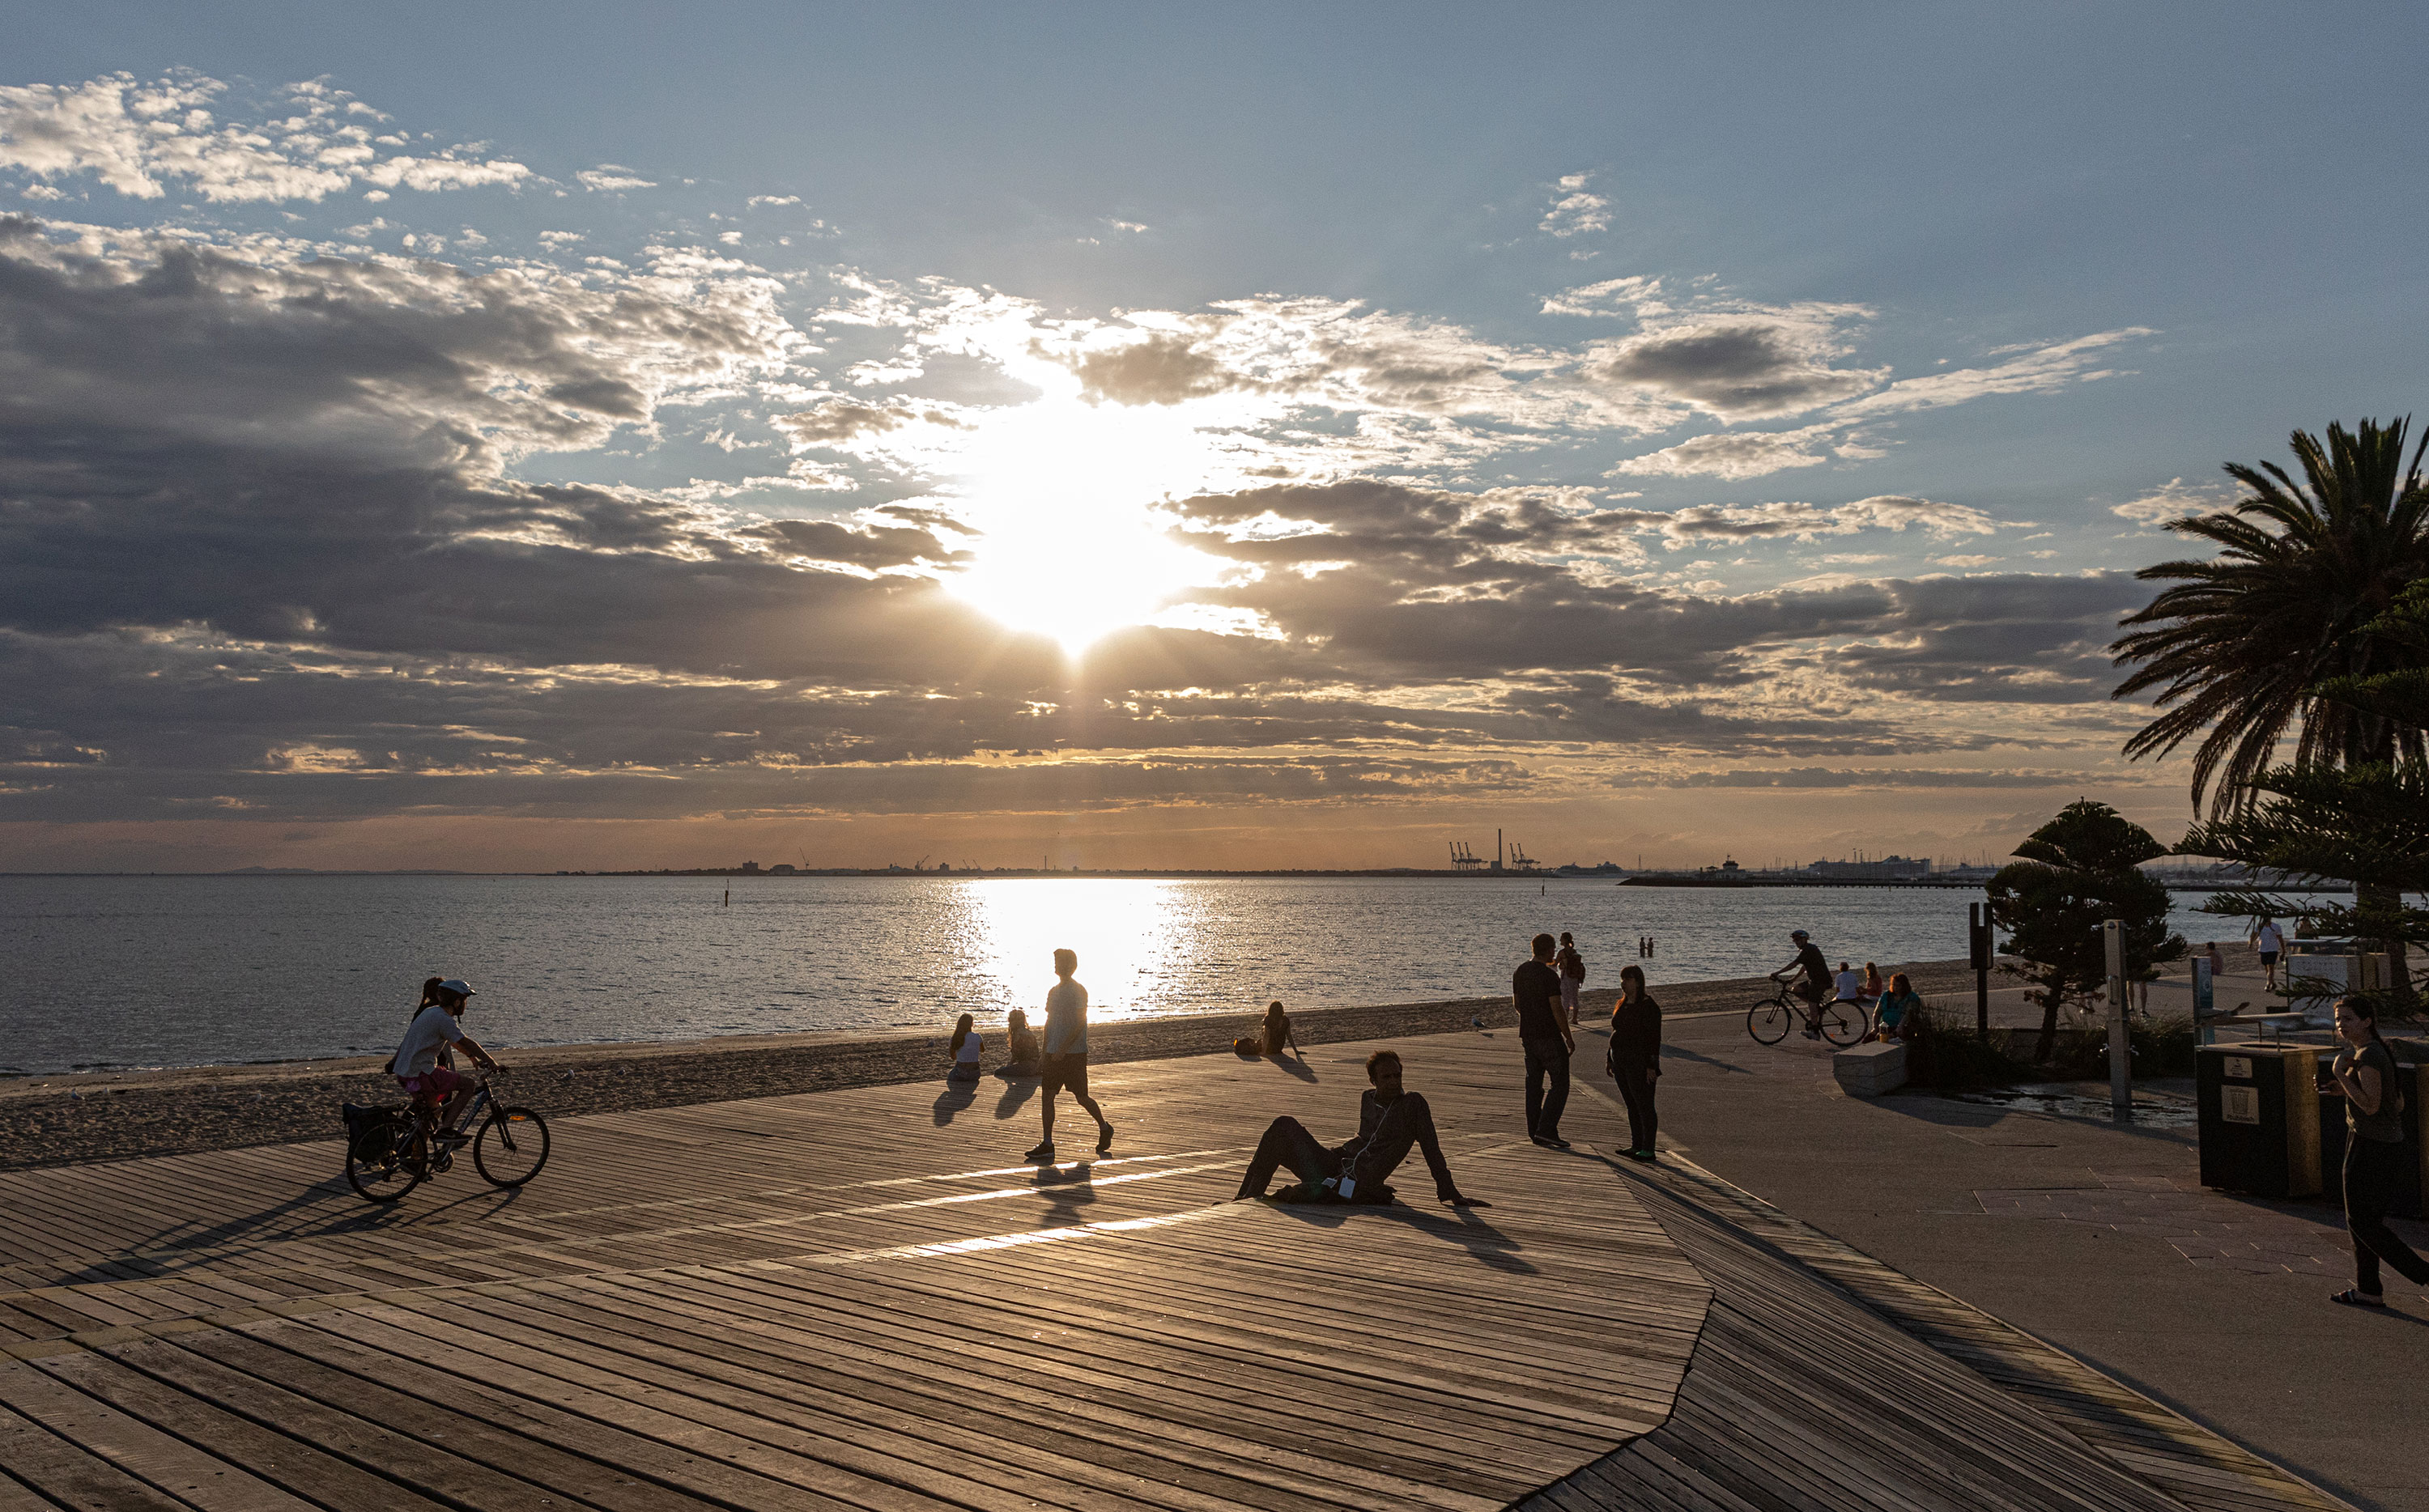 People spend time at St Kilda Beach in Melbourne, Australia on March 28.